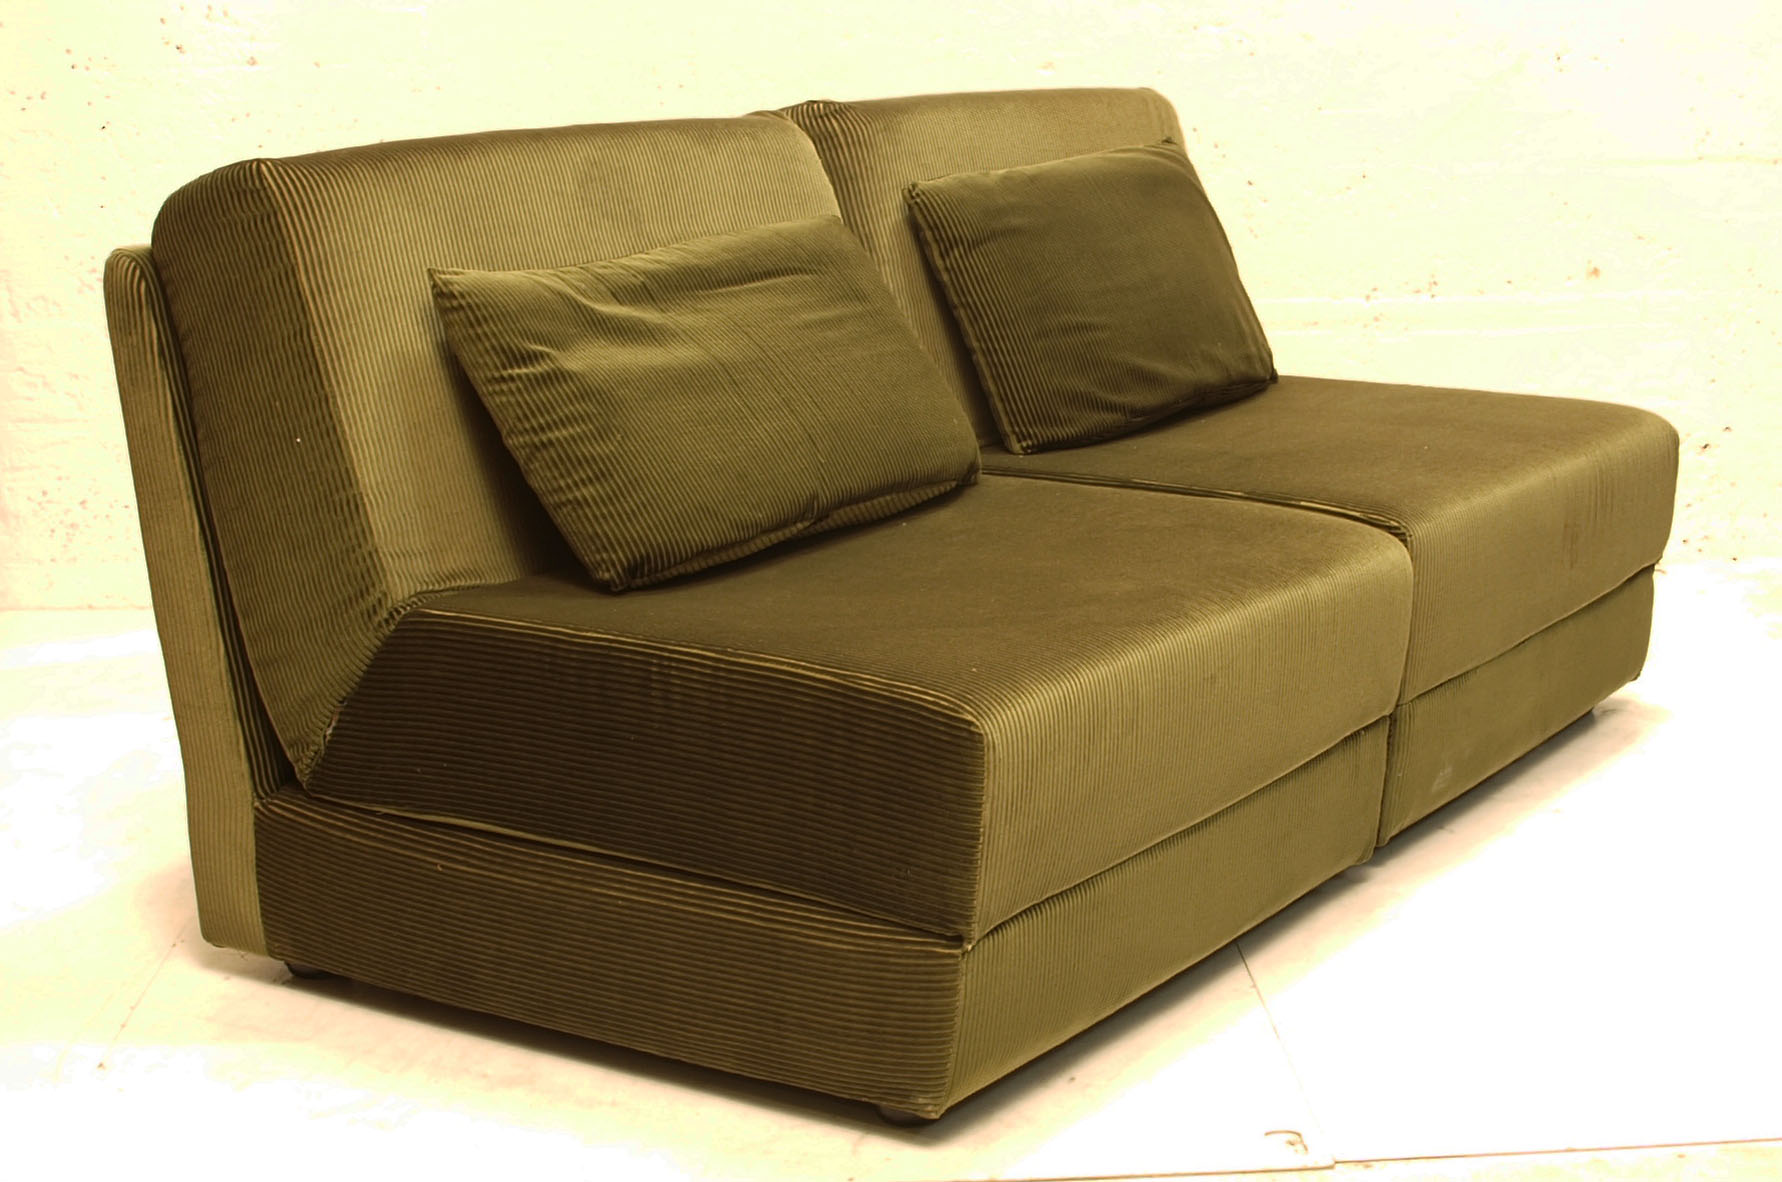 2er element sofa manchester olive klappbar m bel z rich vintagem bel. Black Bedroom Furniture Sets. Home Design Ideas